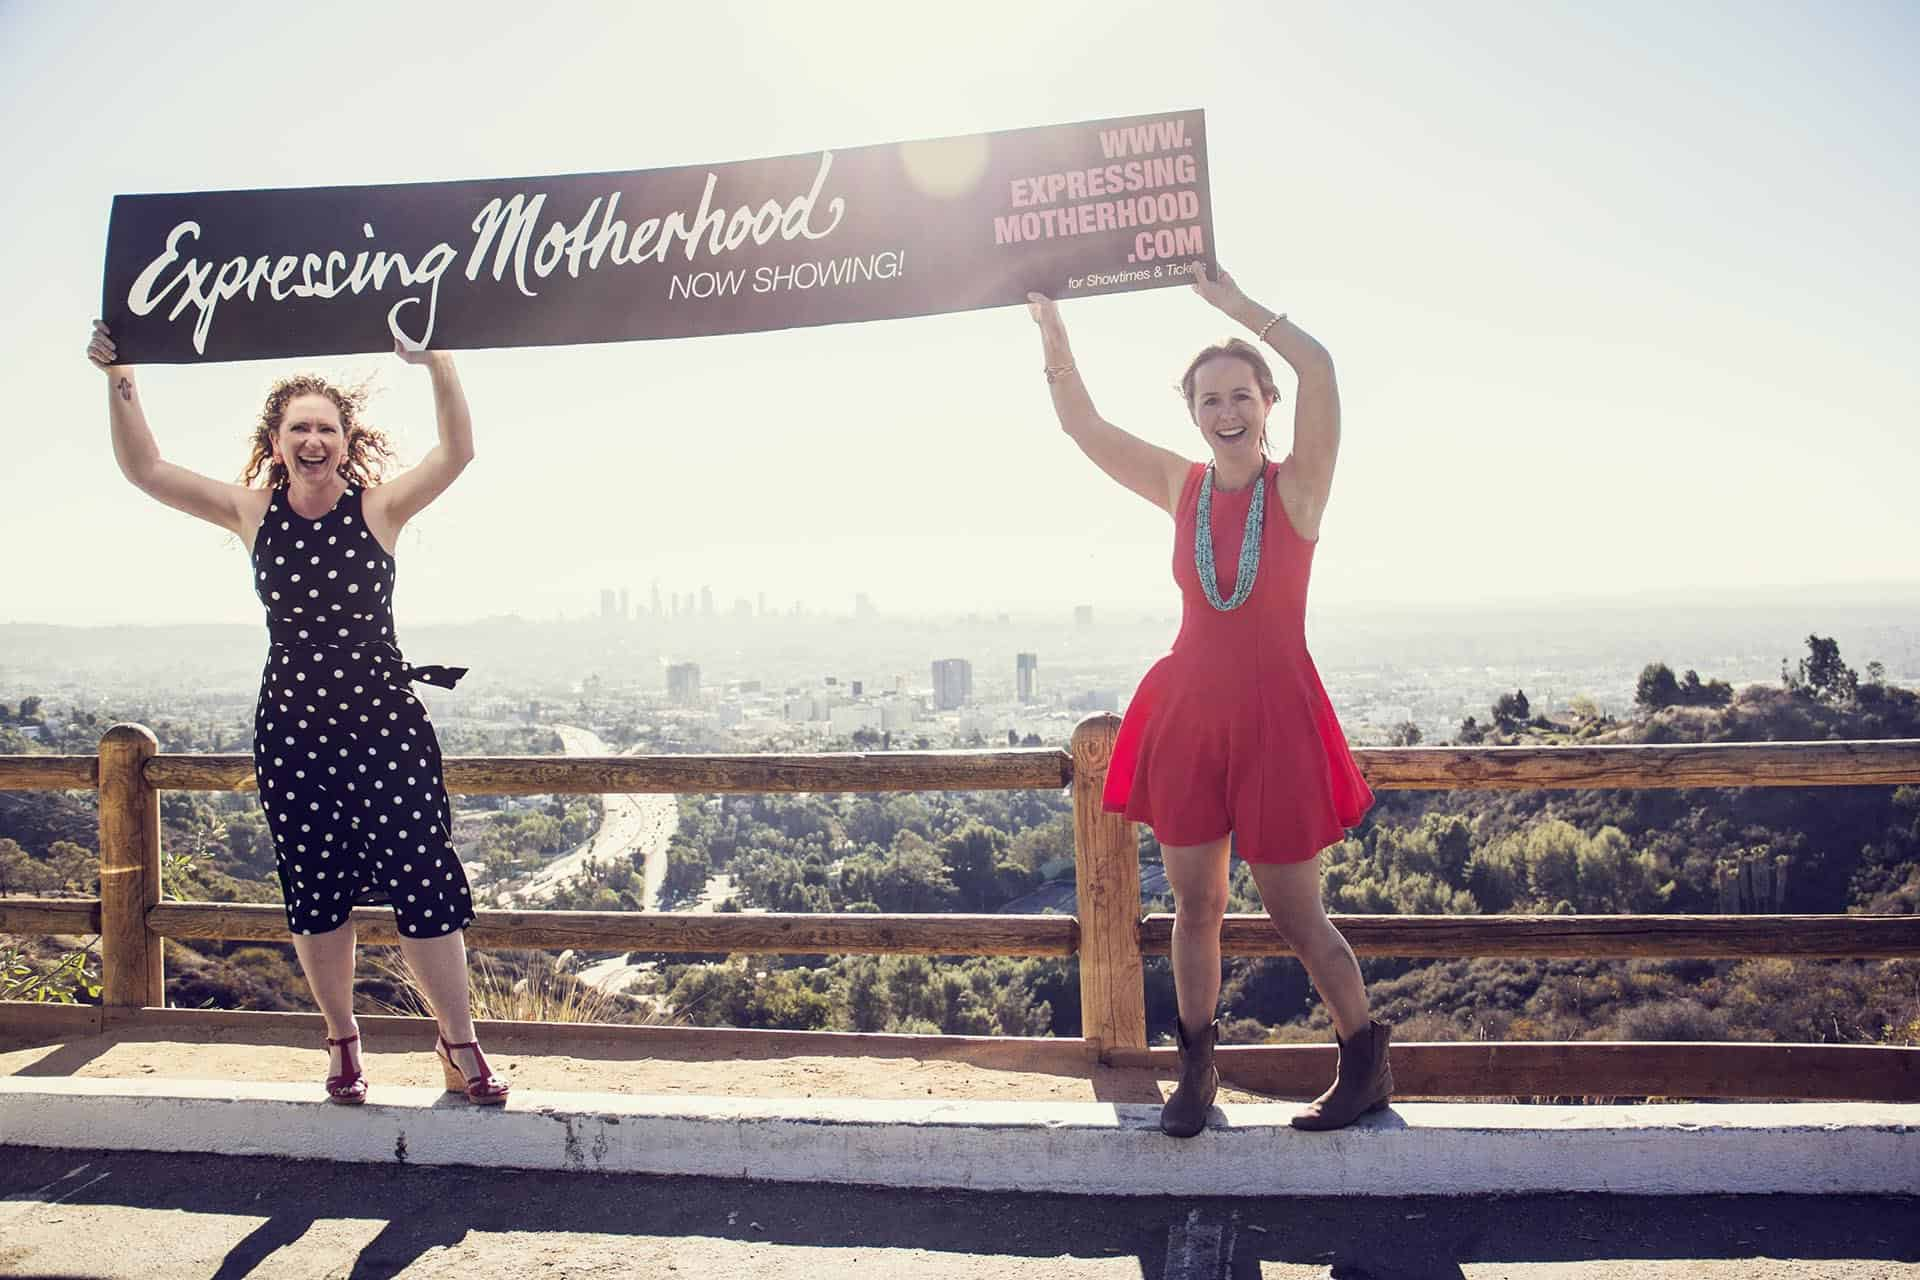 Expressing Motherhood Will Be in Silver Lake Soon